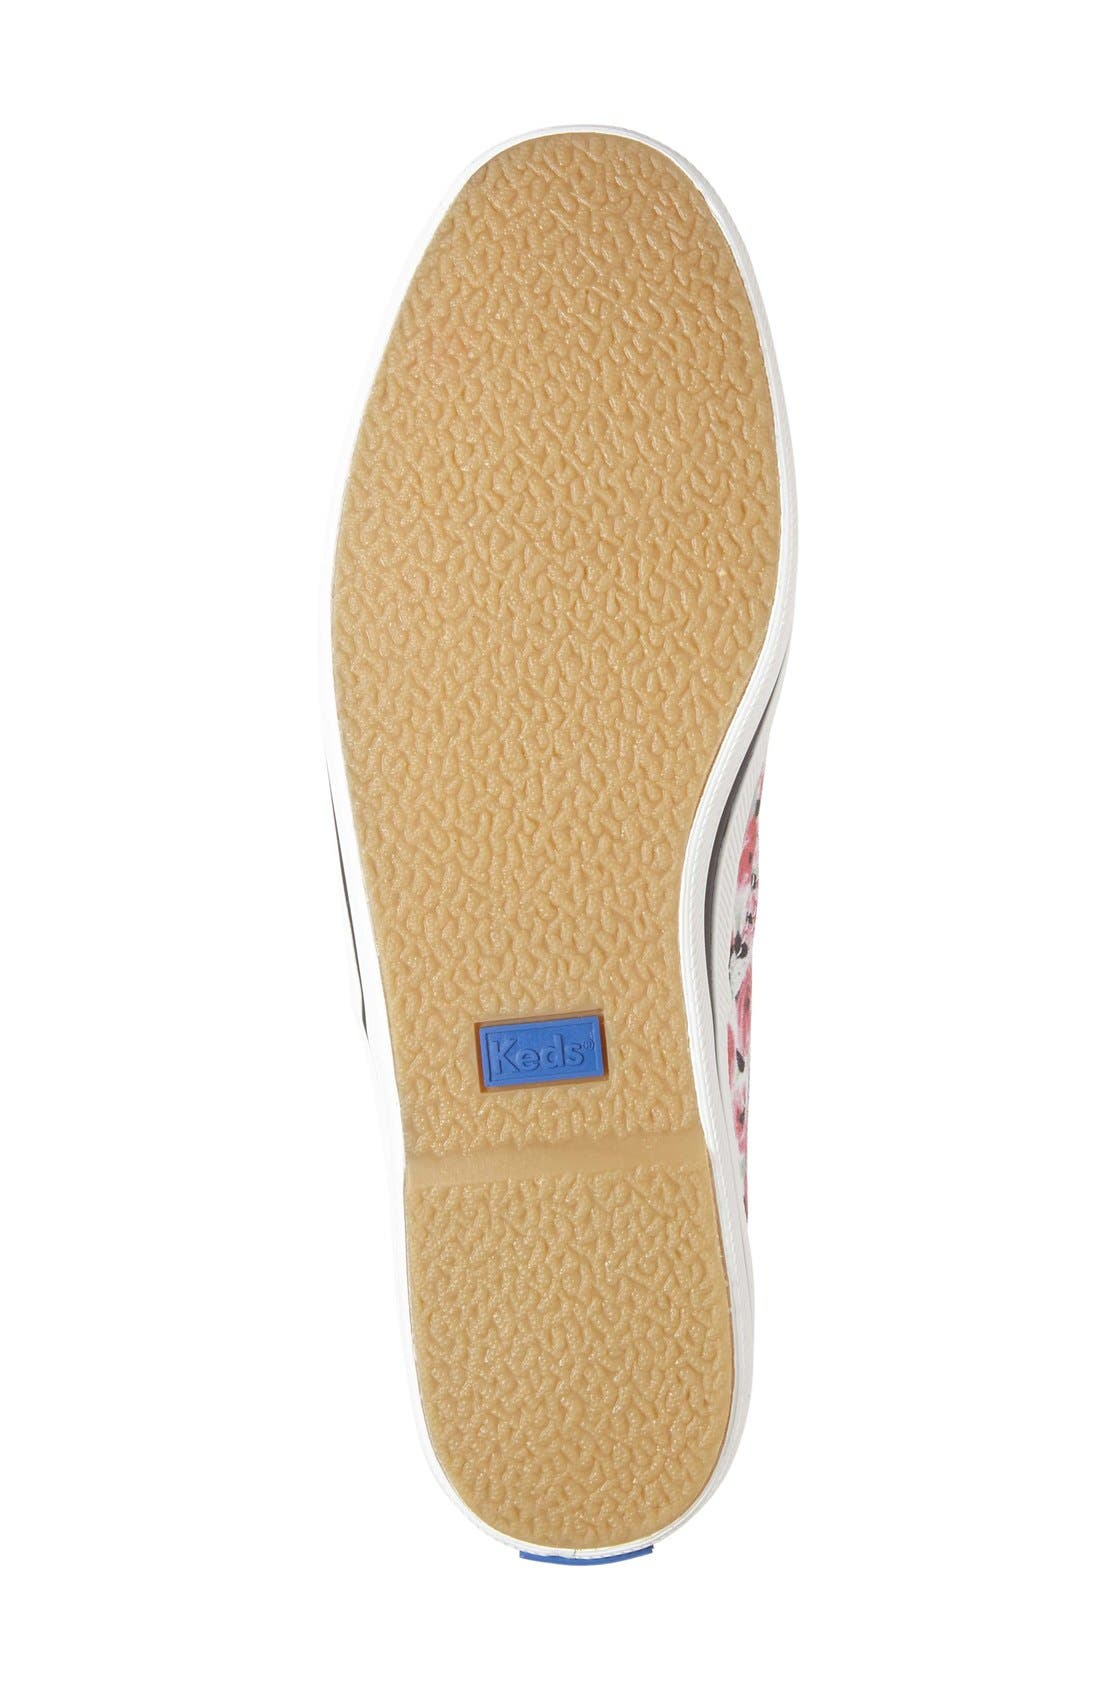 Alternate Image 4  - Keds® for kate spade new york 'kick' print sneaker (Women)